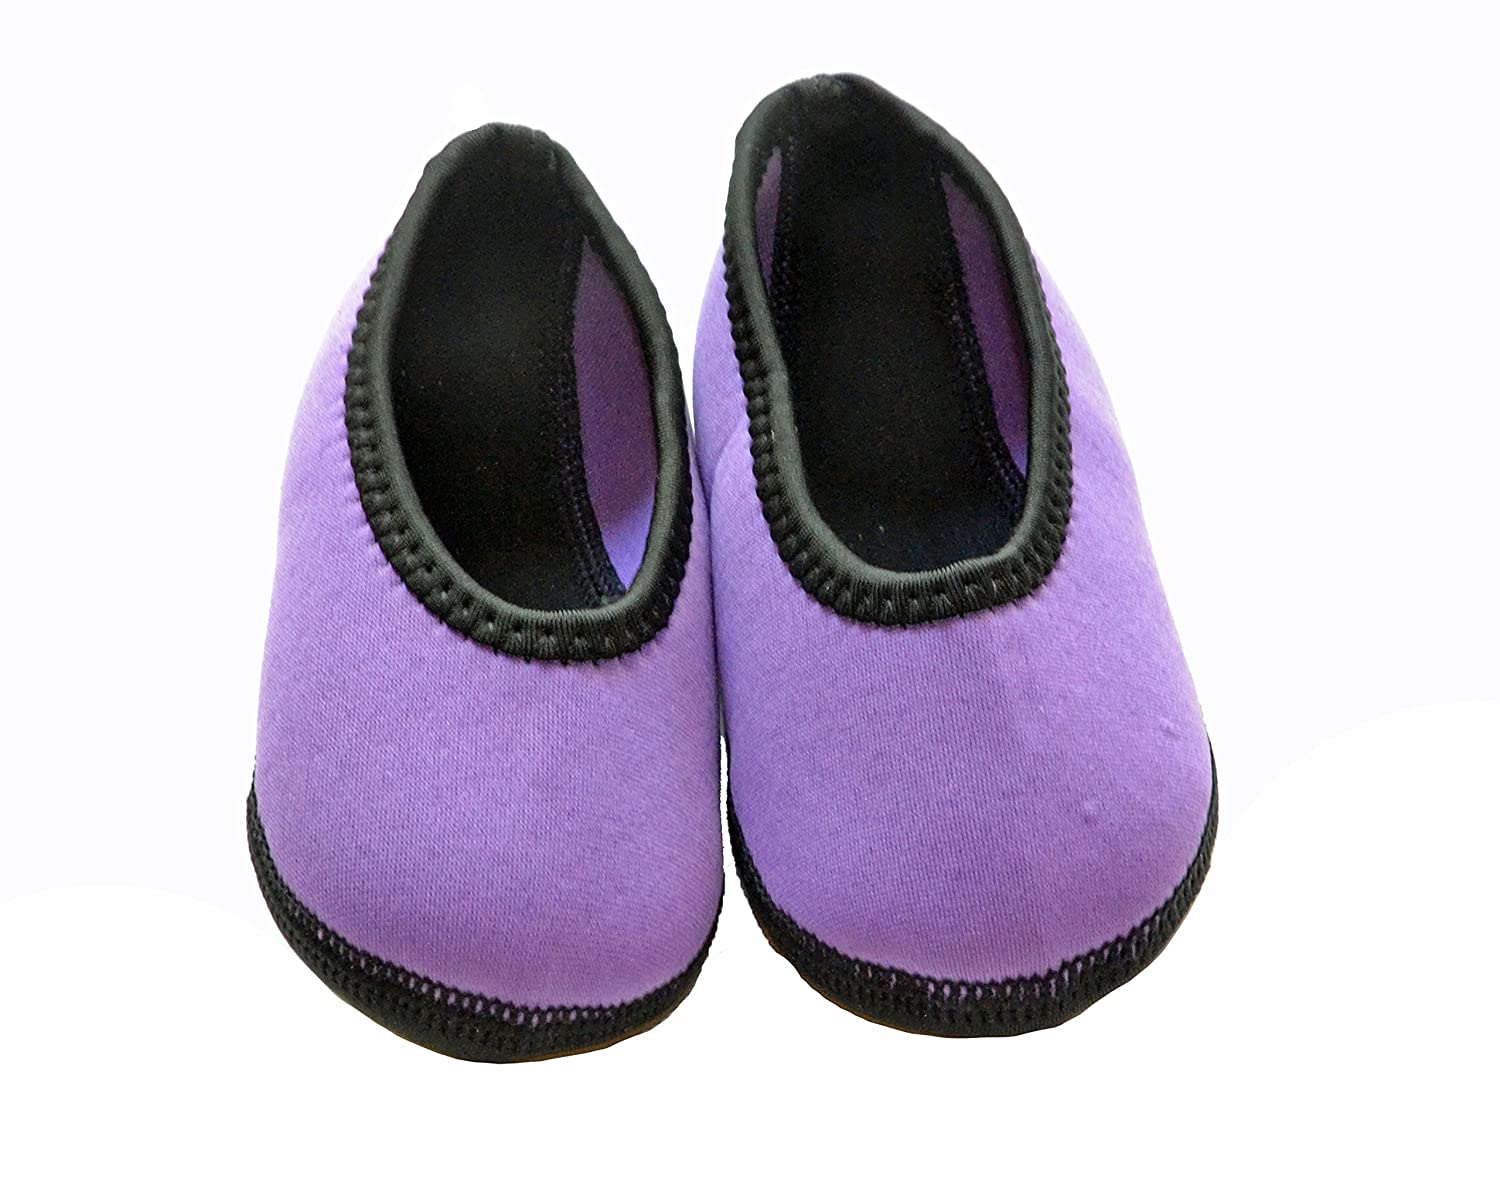 Nufoot Indoor Toddler Shoes Ballet Flat Size 9T Purple 12T 2 Count